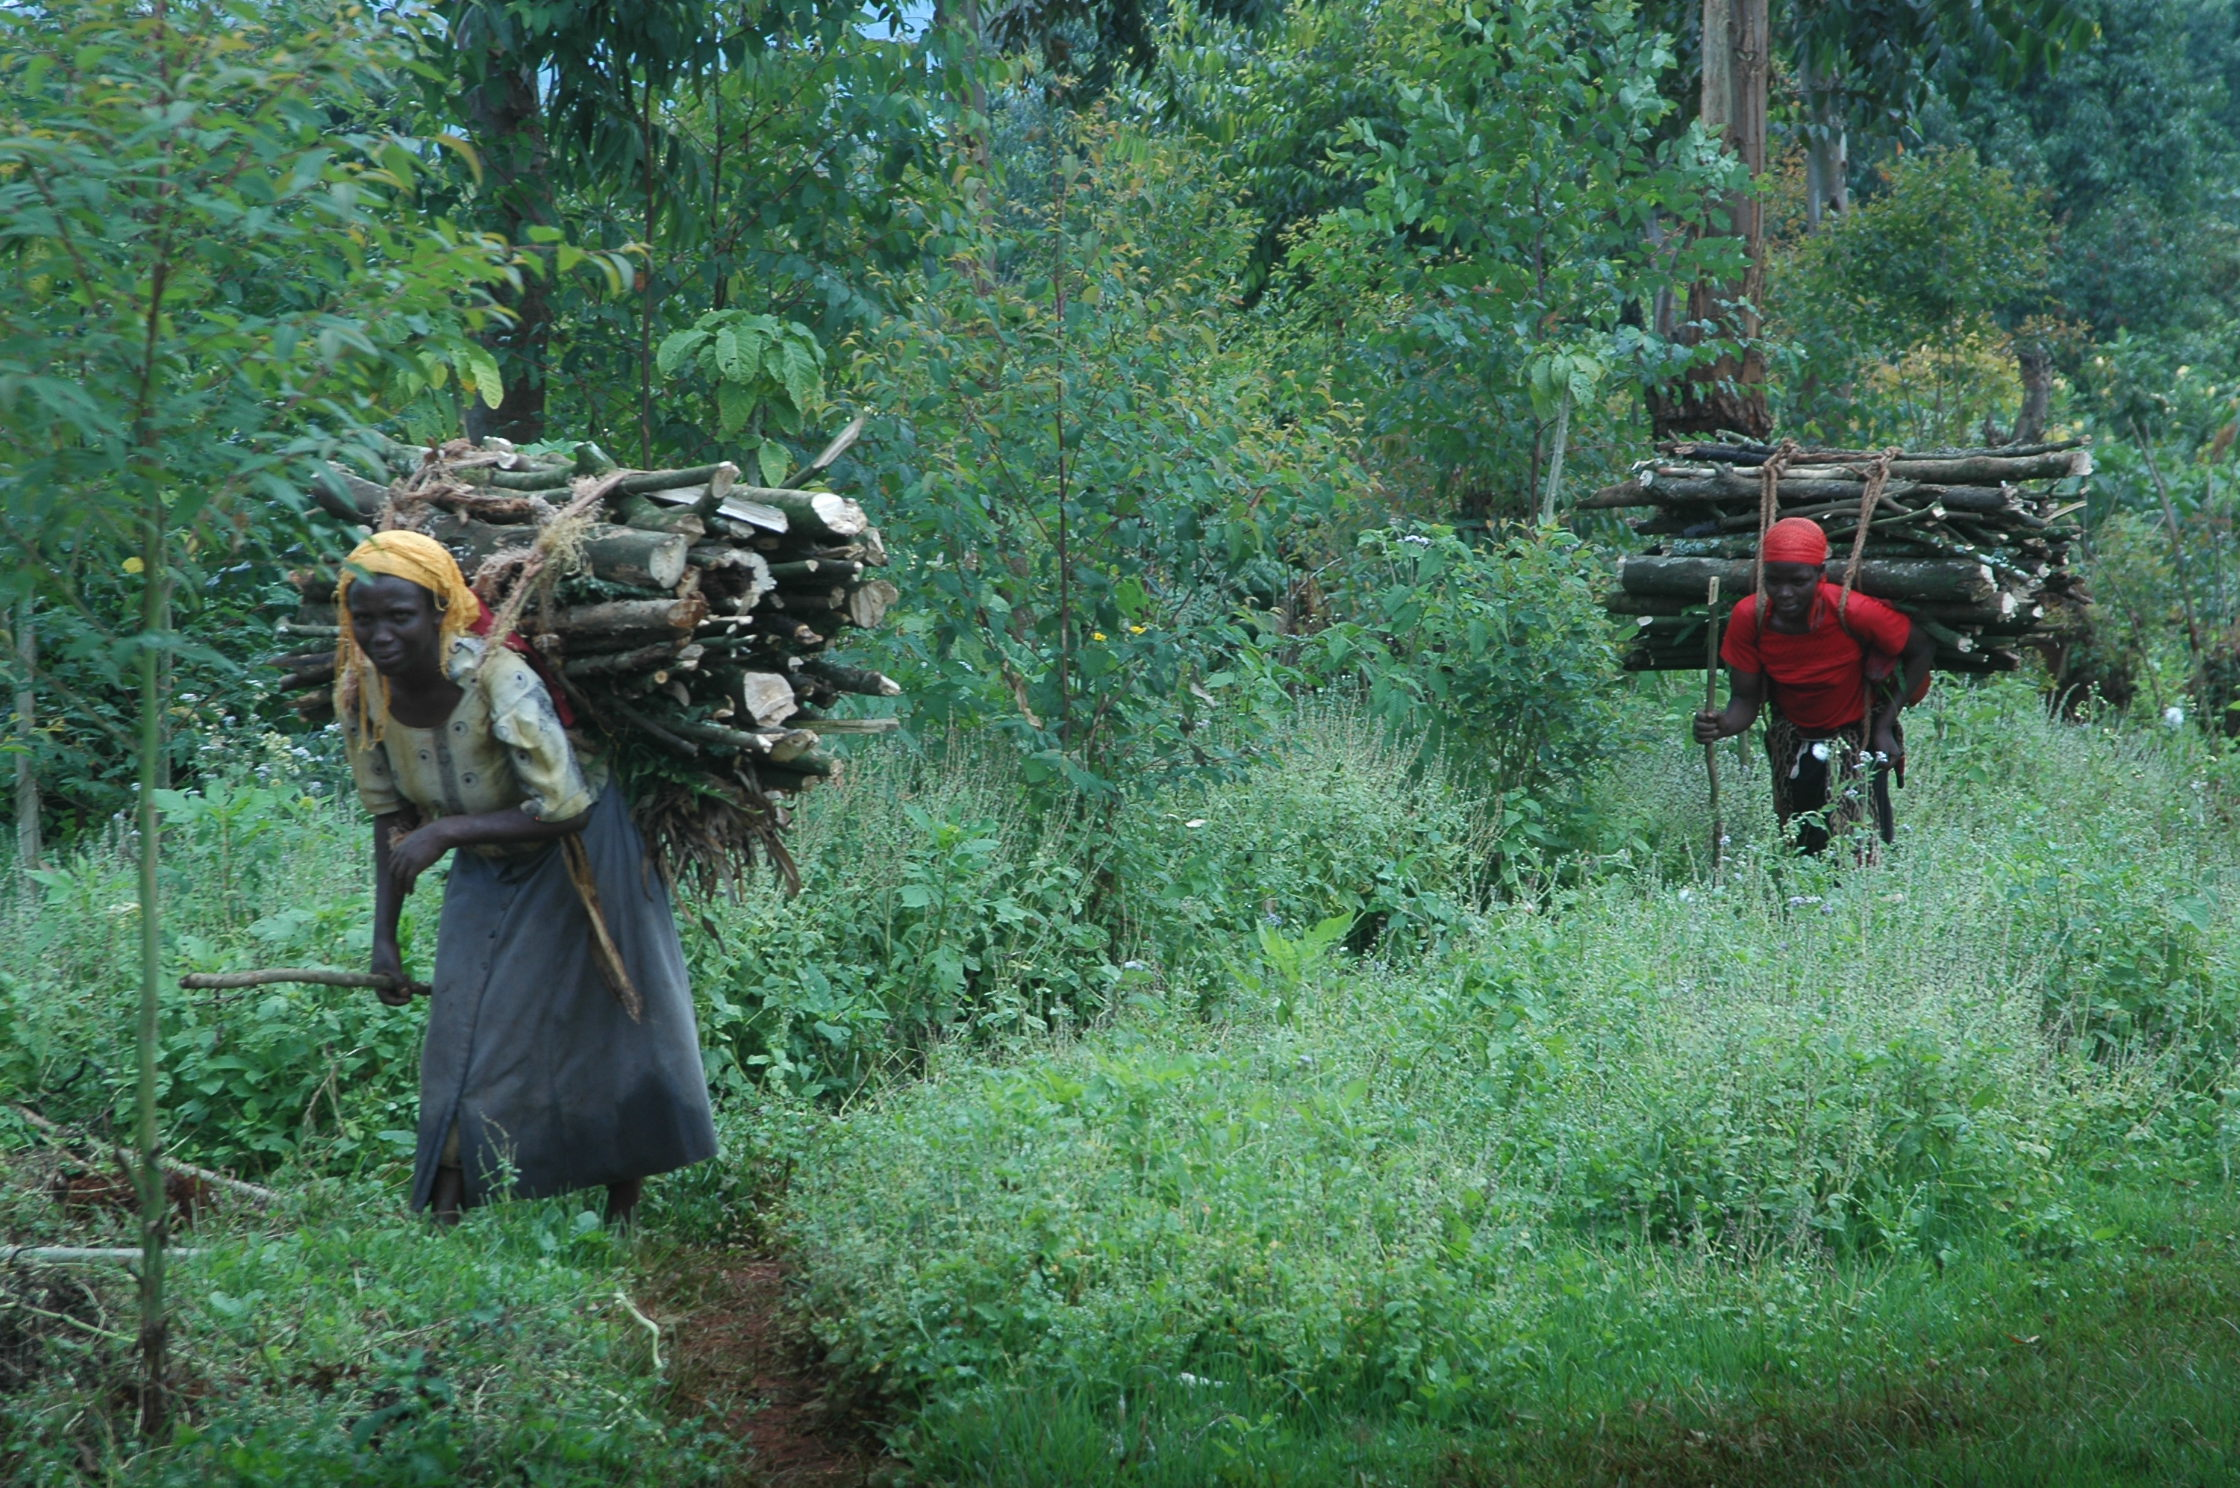 Women disembarking from Mt. Elgon national park with firewood. Cutting down of trees has led to massive deforestation of Mt. Elgon range in eastern Uganda